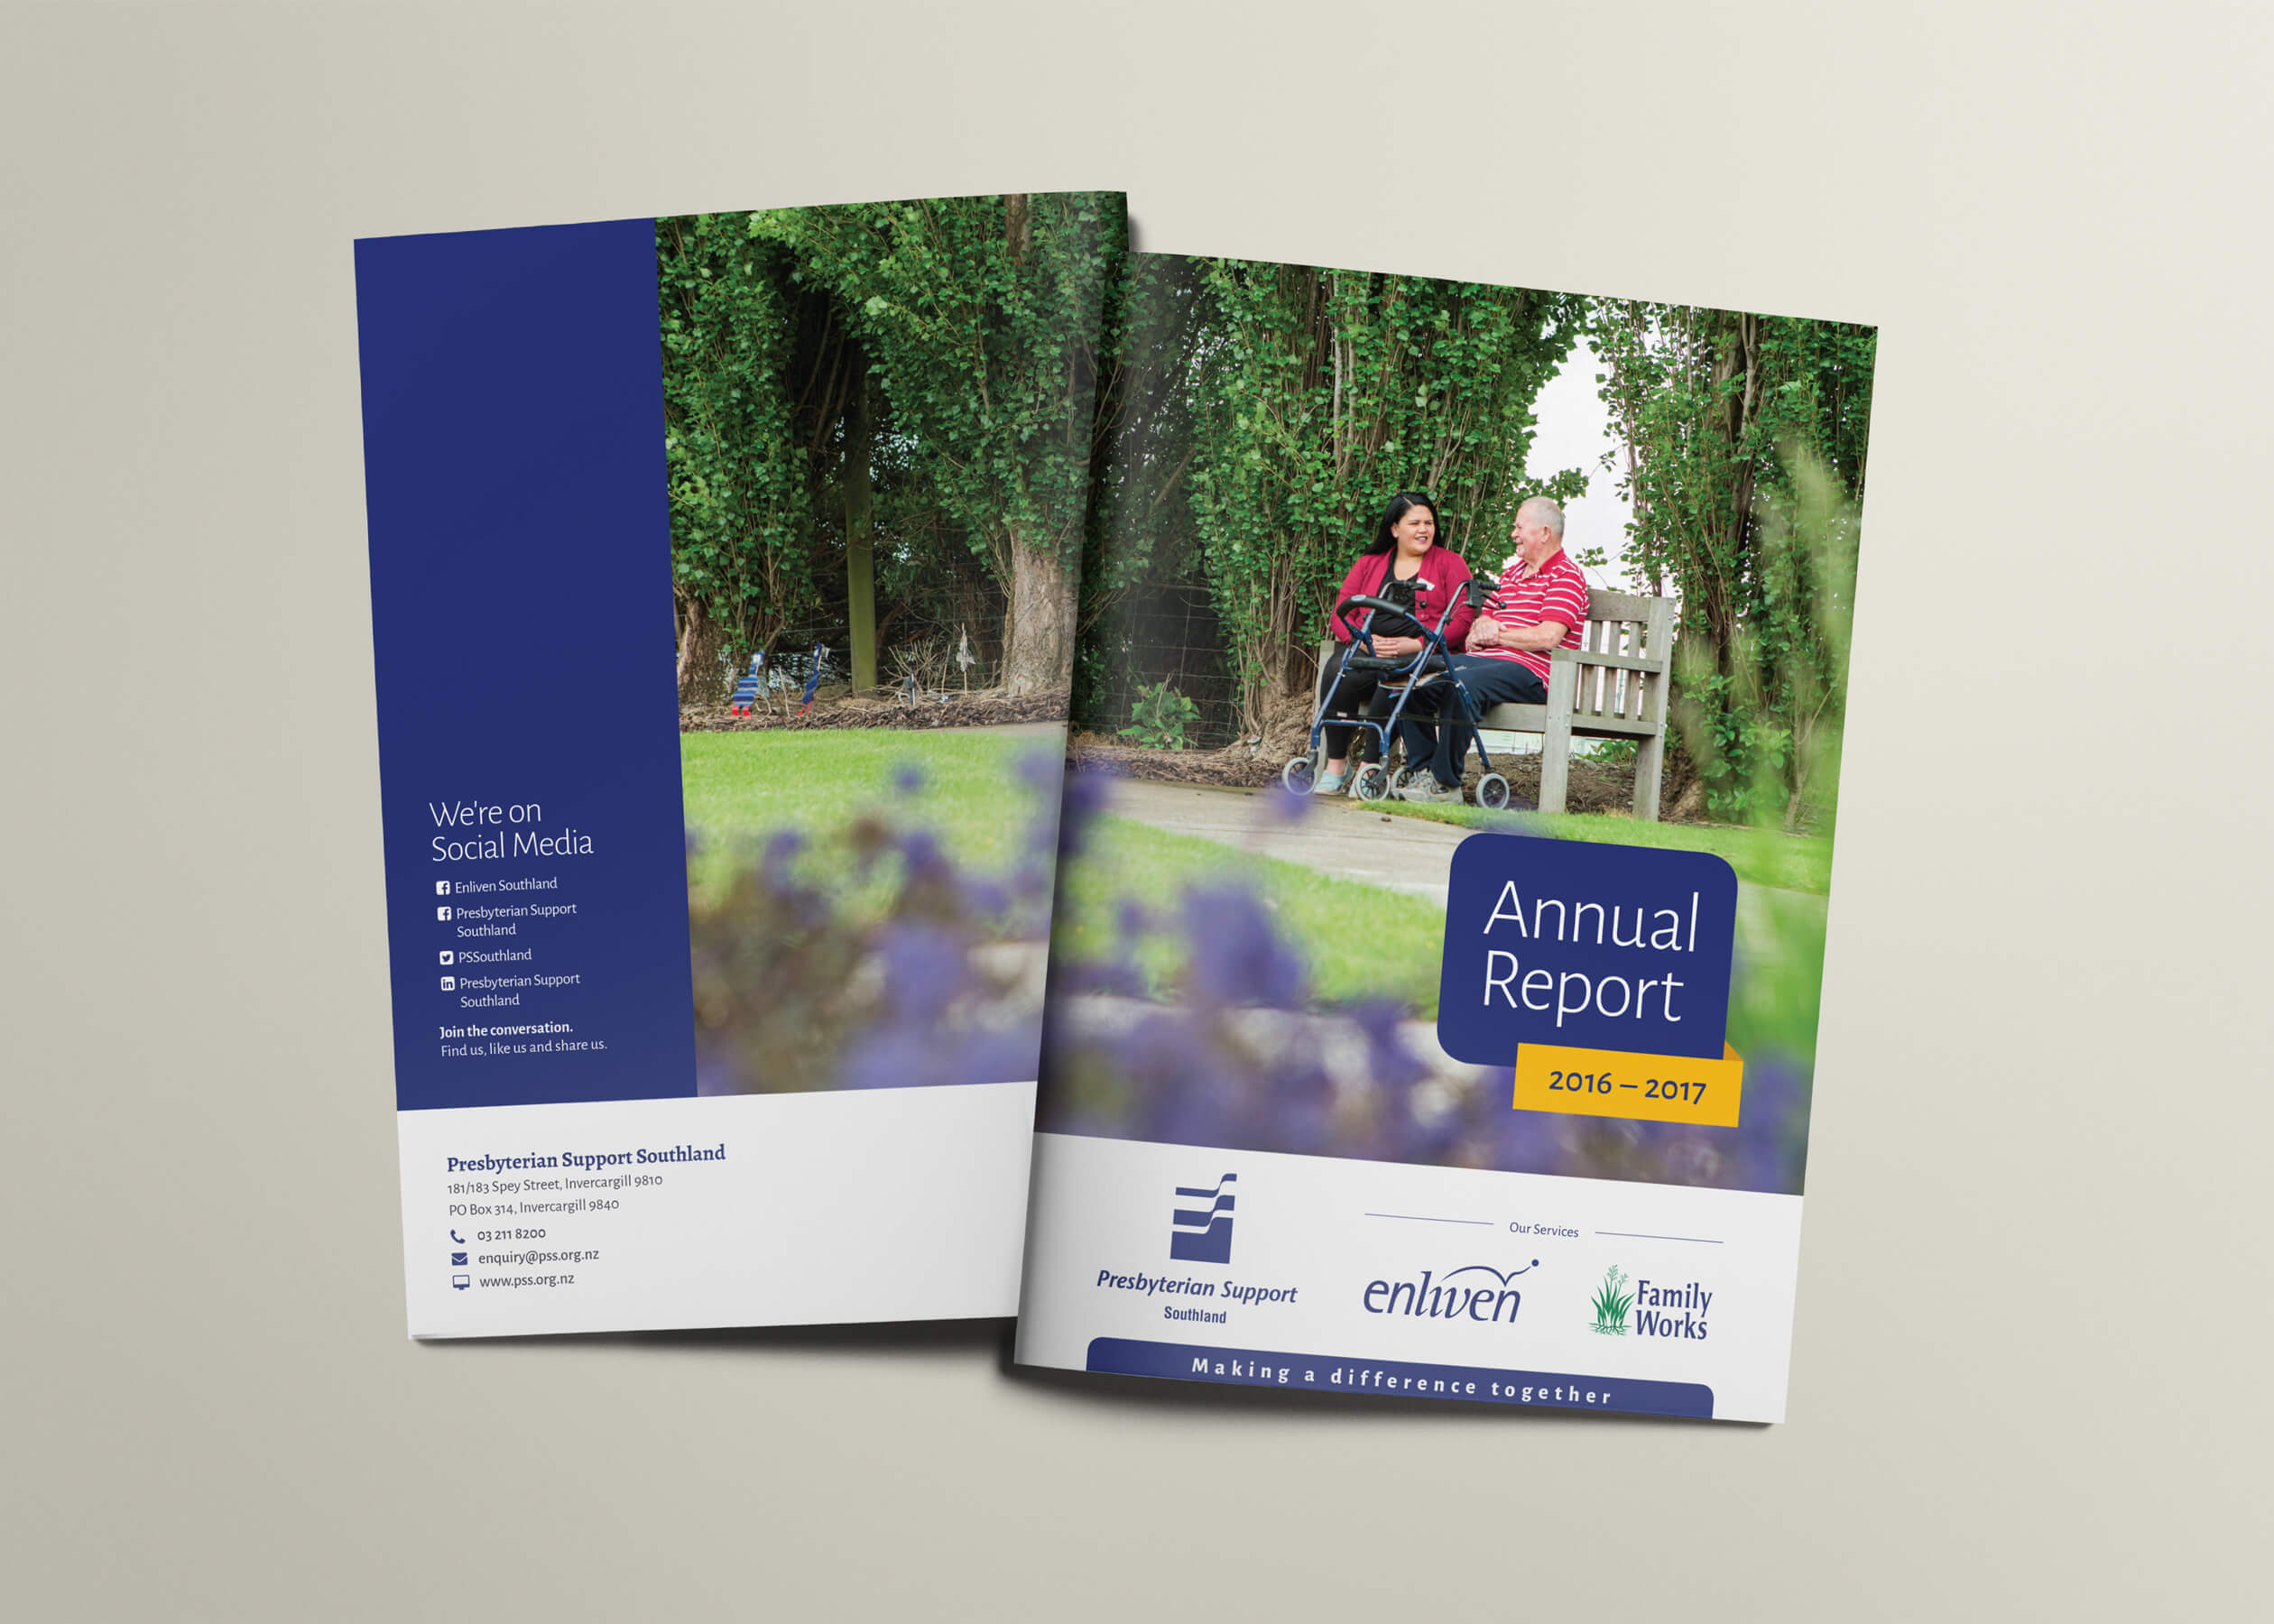 Presbyterian Support Southland Annual Report cover